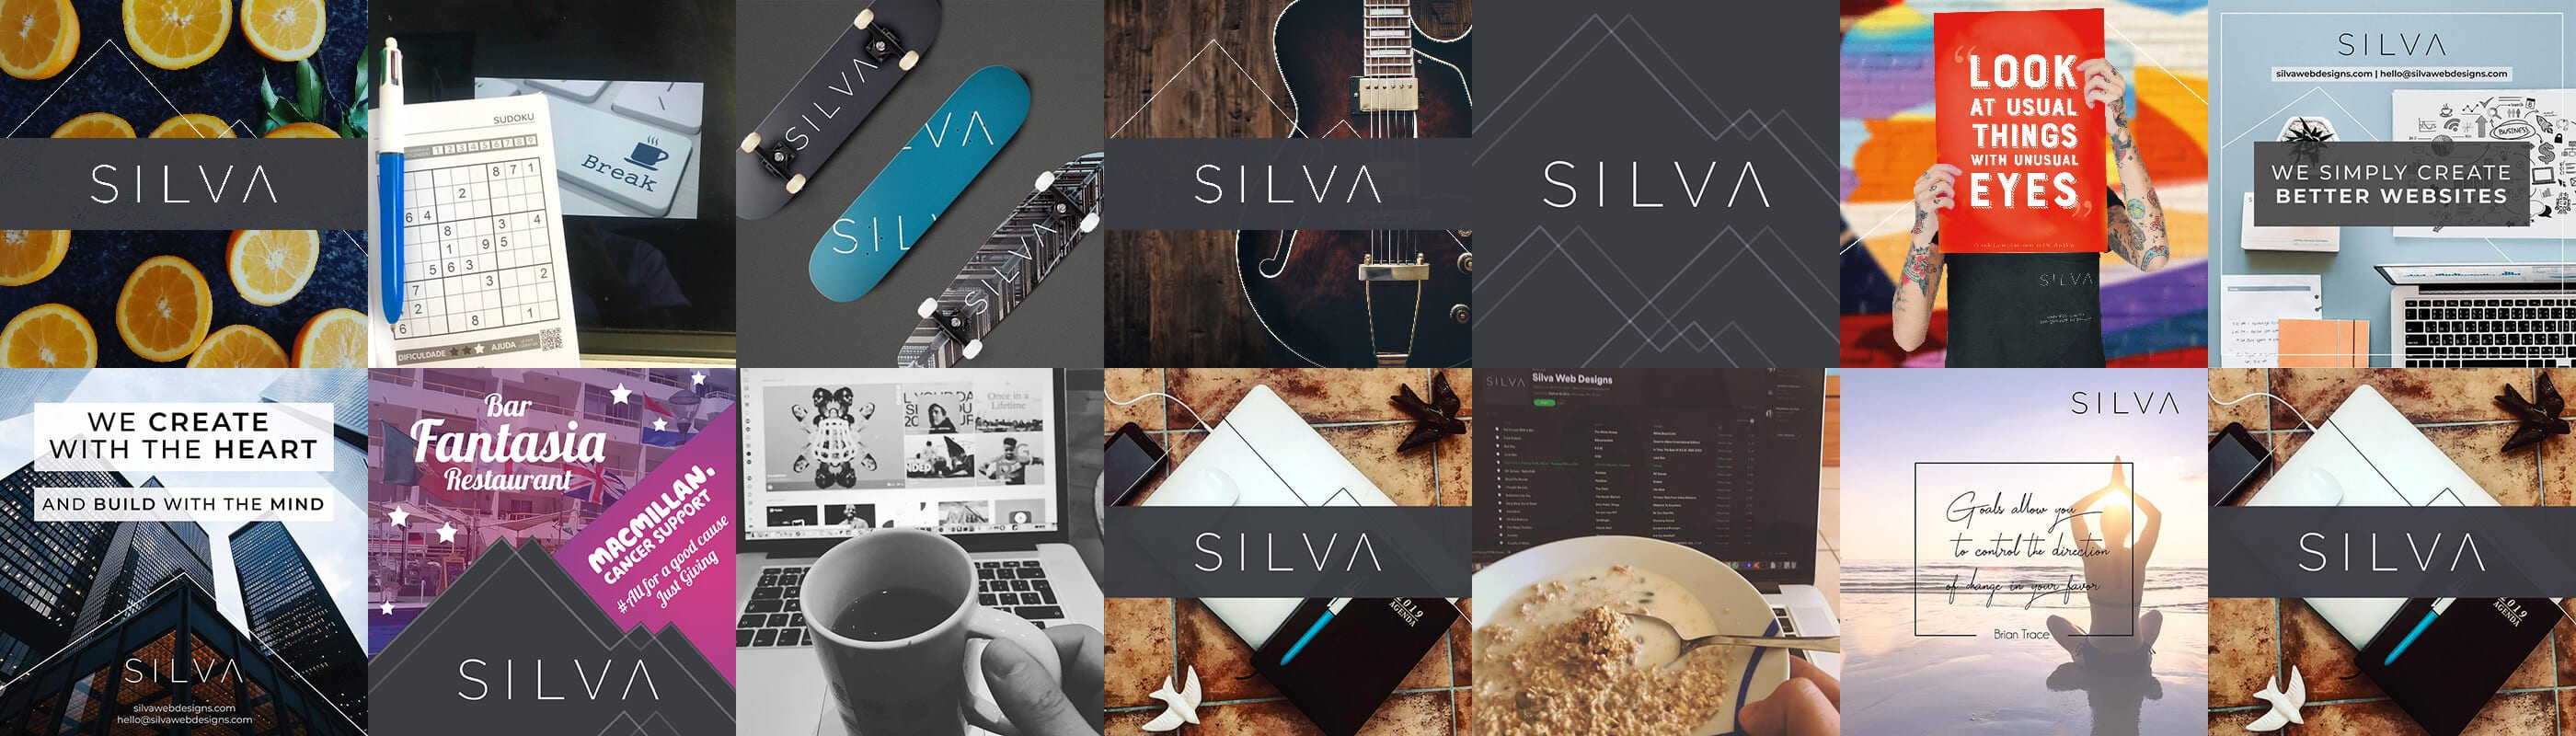 Silva Web Designs - Journey - Our Portfolio